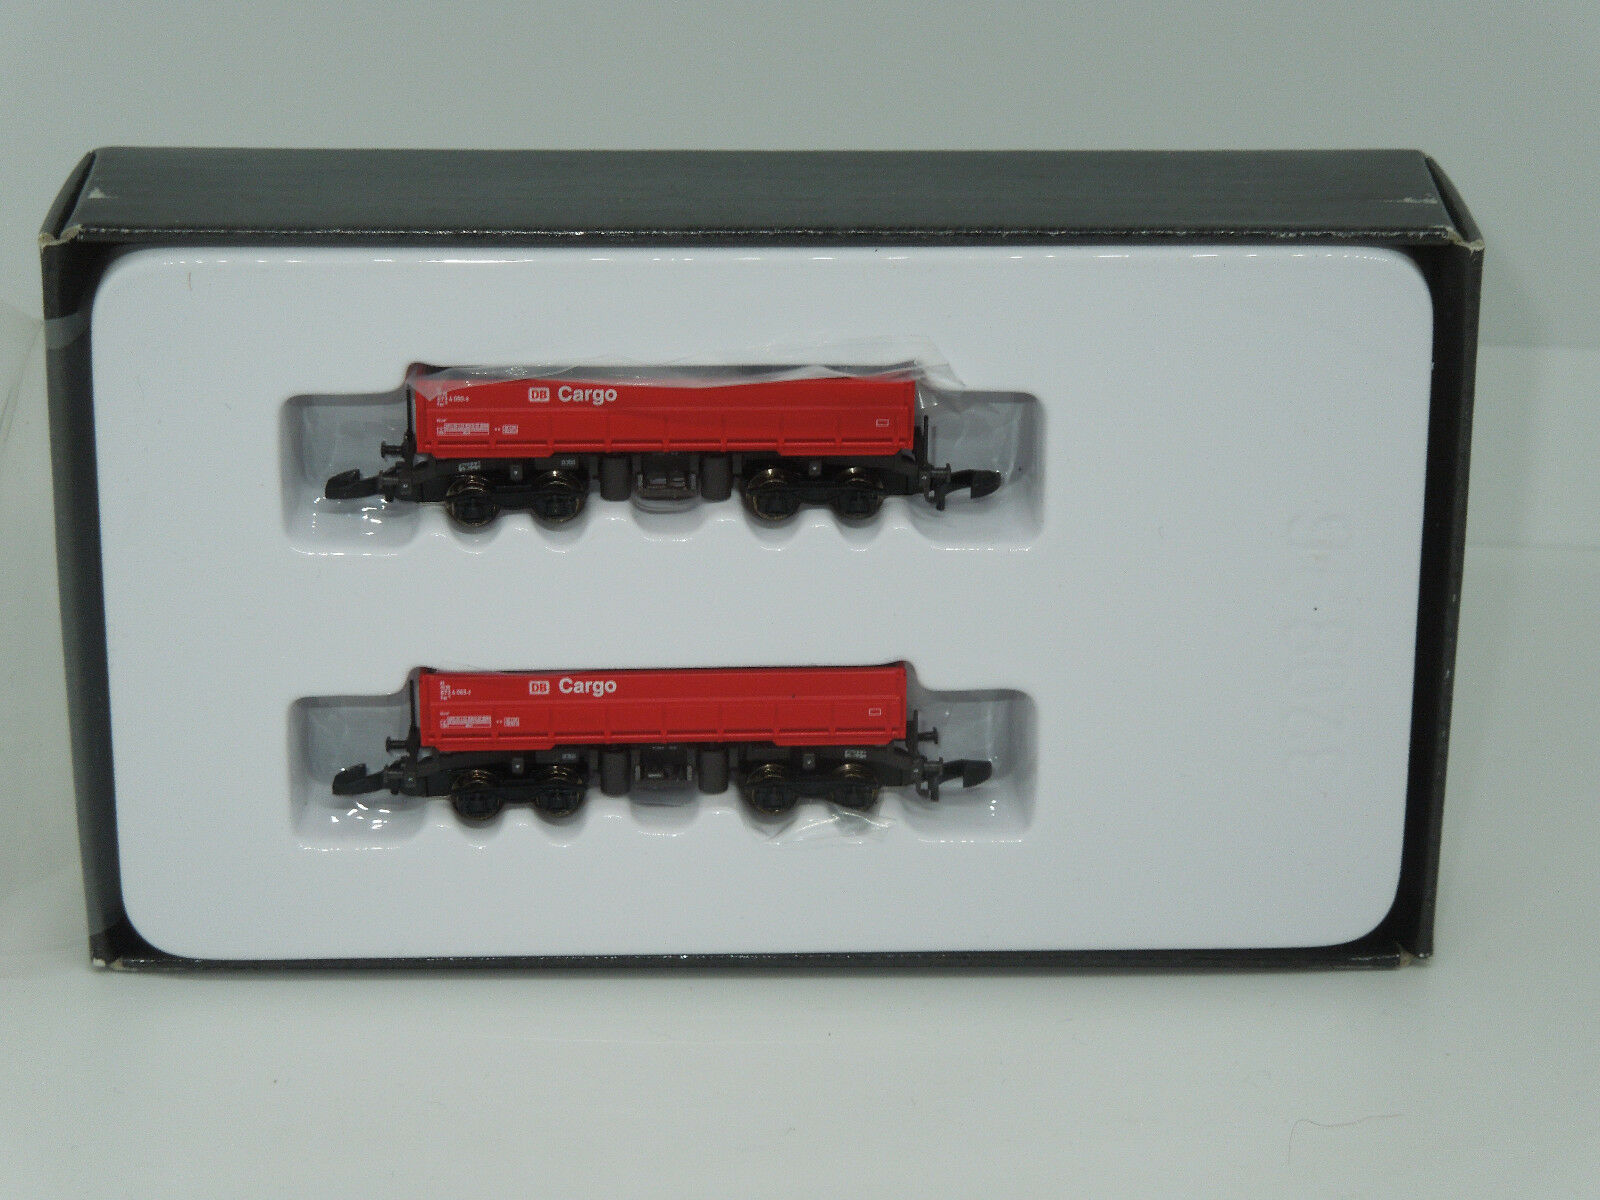 Märklin mini-club 82432 ammassare Kipp Wagenset DB CARGO